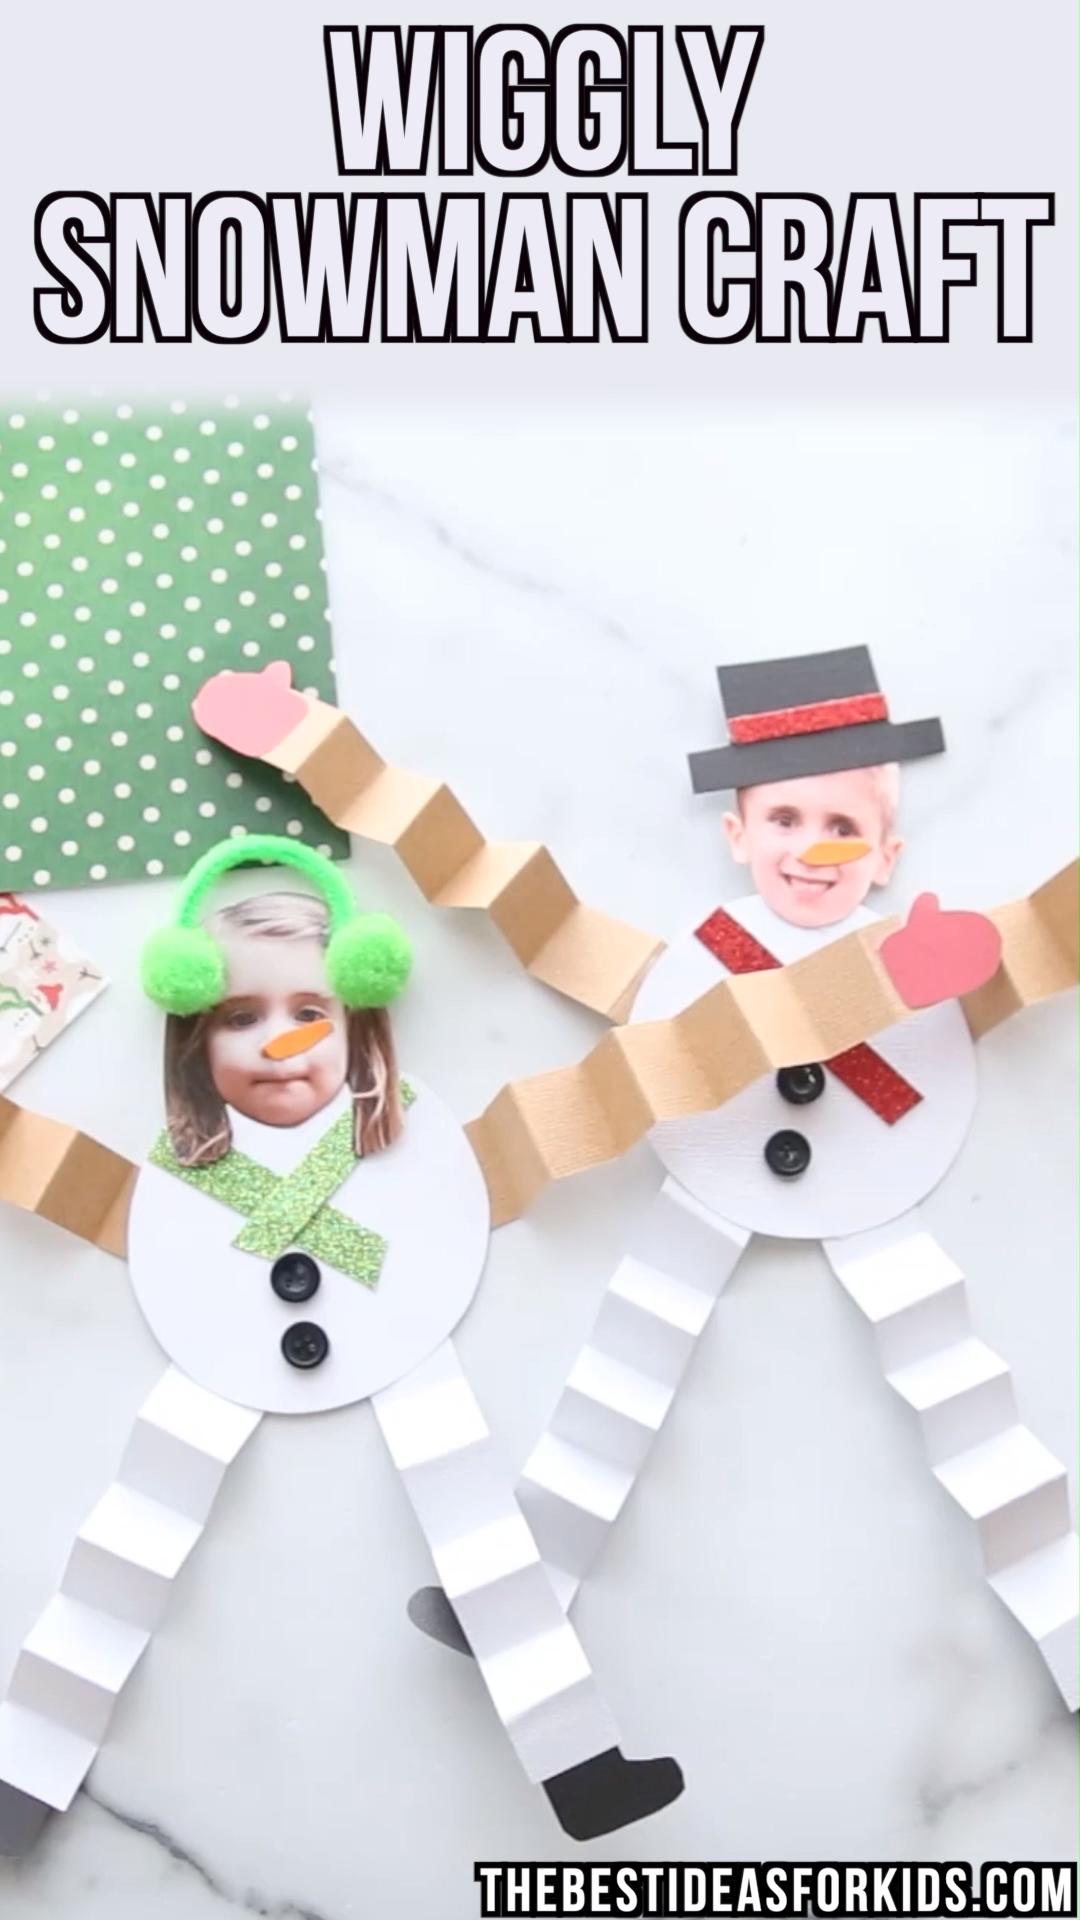 SNOWMAN CRAFT - cute snowman craft for kids with free printable template!